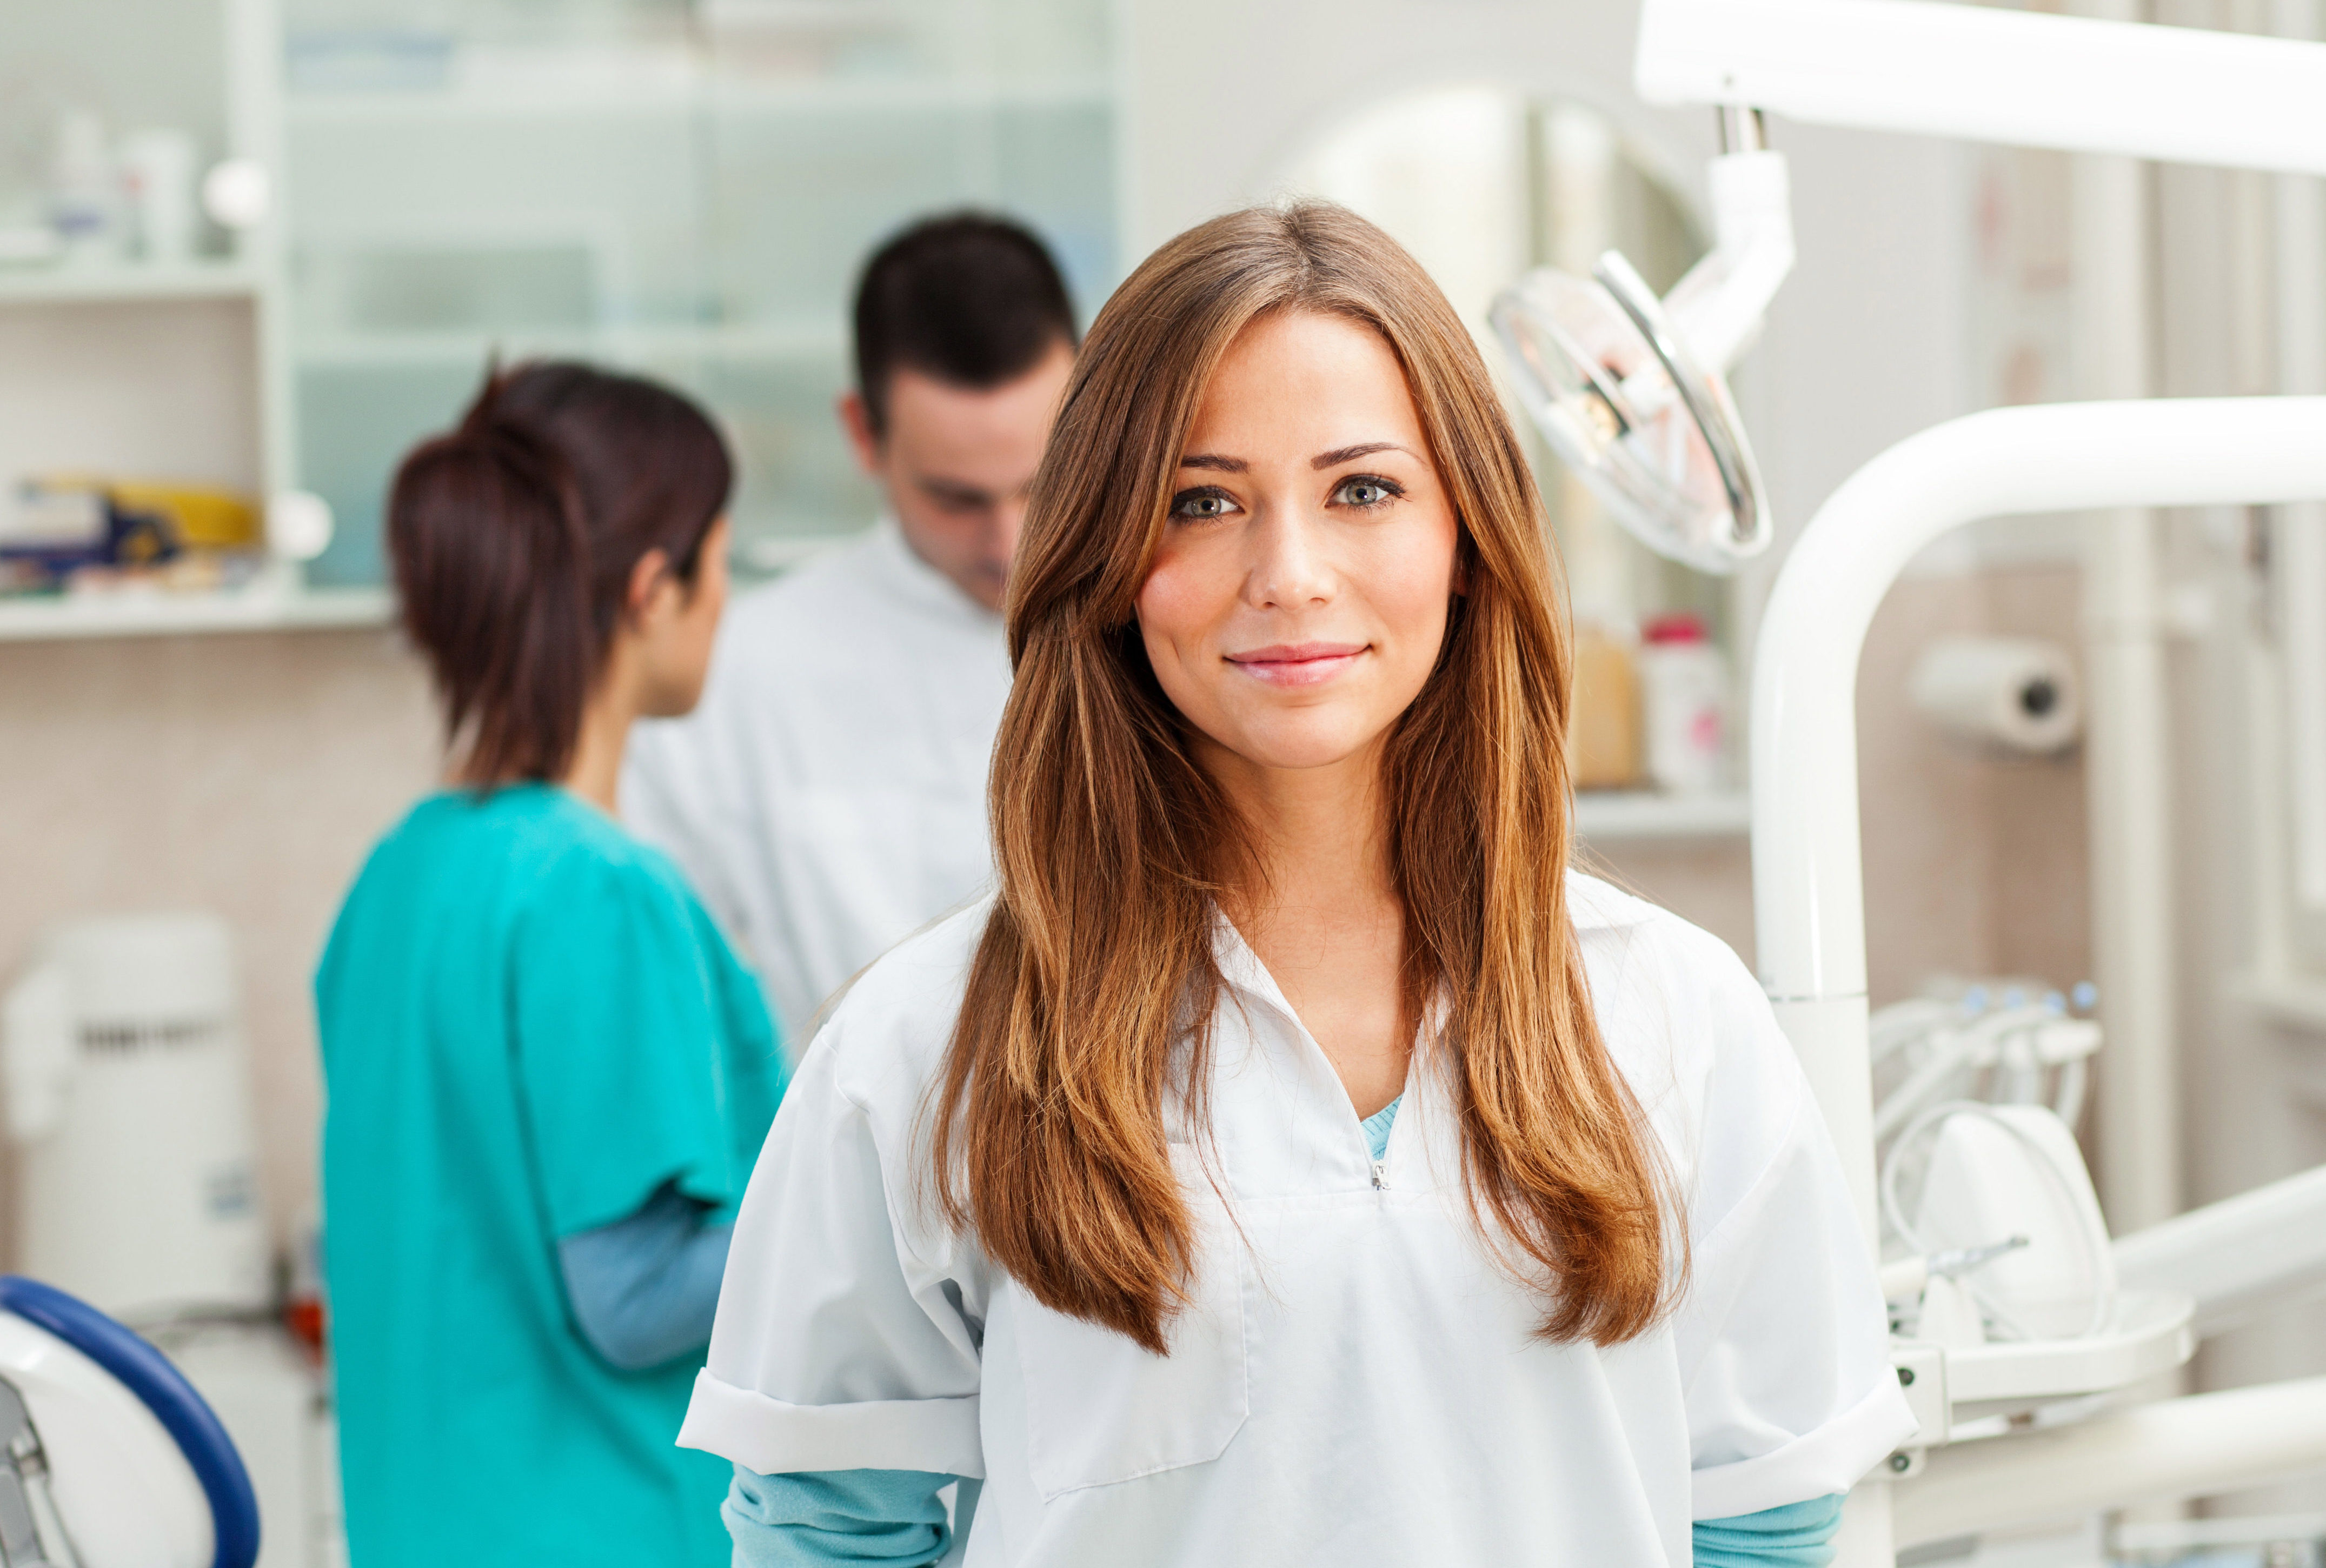 Student Dentist Professional Liability  Pharmacists. Hp Tri Color Print Cartridge Best Ipad Pos. Colostrum In Breast Milk Dentist Harlingen Tx. Premier Plastic Surgery Pasadena. Air Conditioner Installation Instructions. Gutter Apron Installation Nudged Elastic Band. Apply Online Bank Account Surface Versus Ipad. Ponitz Career Technology Center. Seattle Beauty Schools High Income Bond Funds